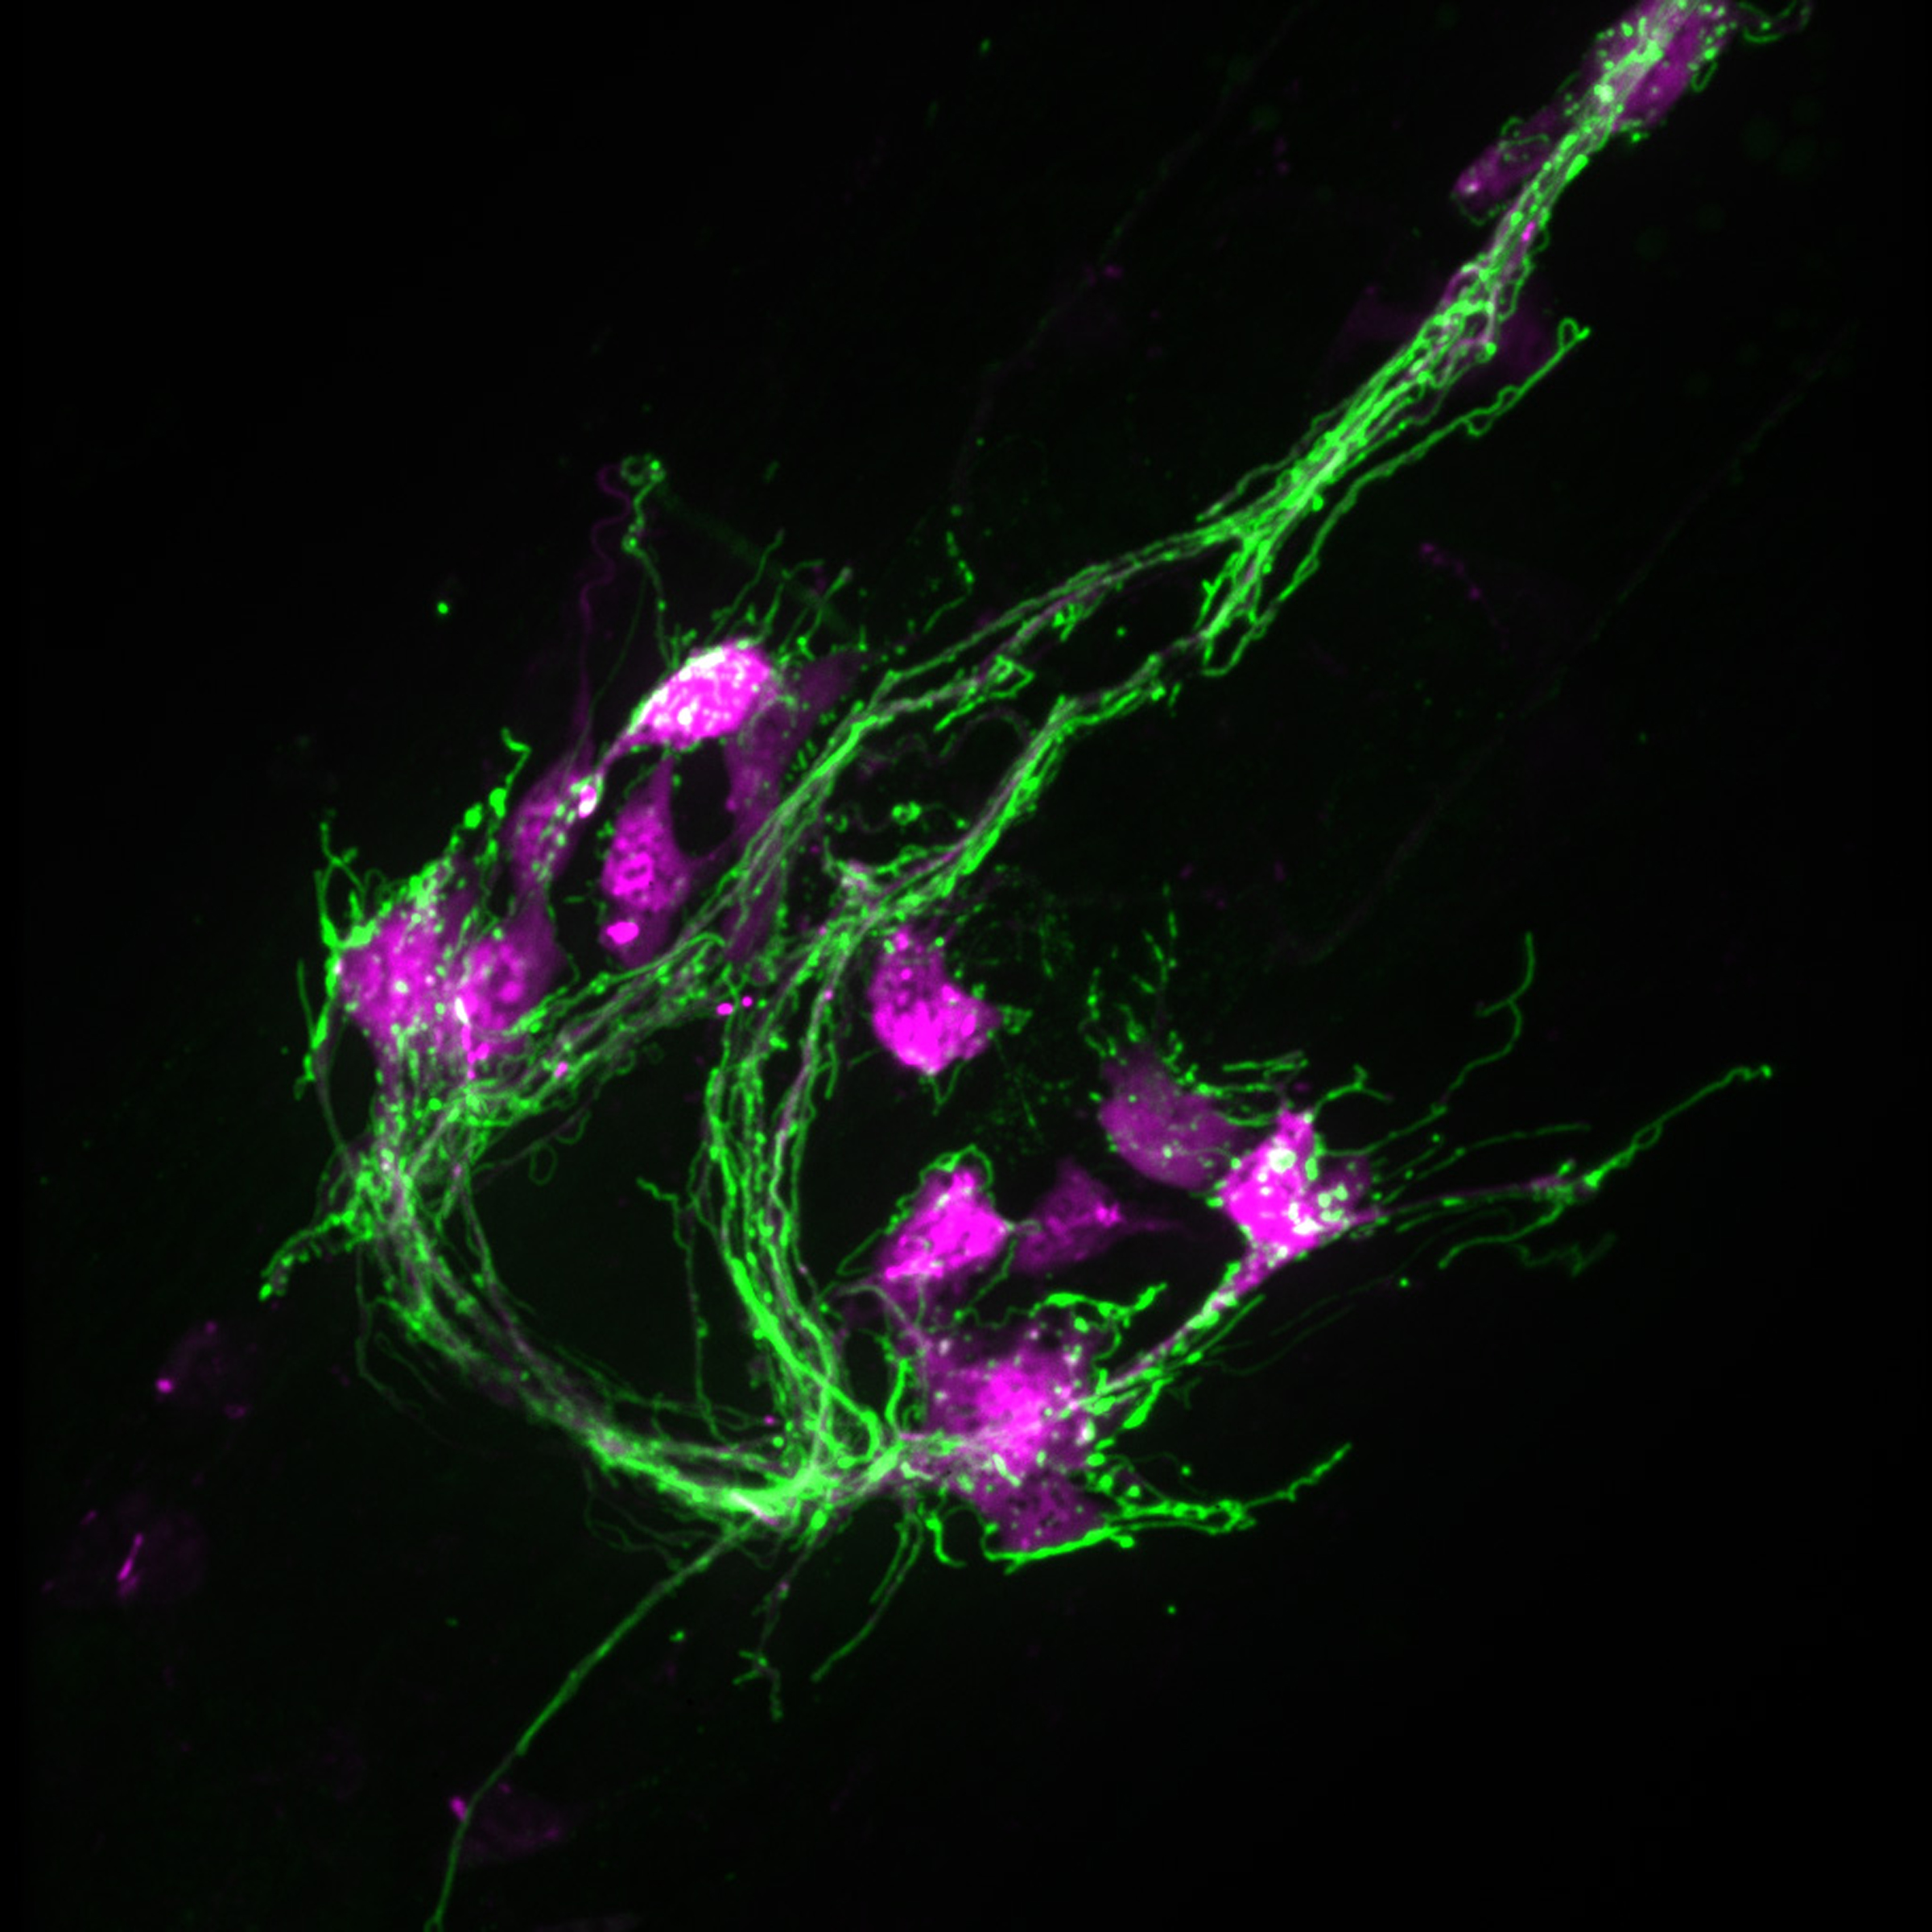 Neuron or nerve cells from a worm, shown here with nerve fibers in green and neuron cell bodies in red.